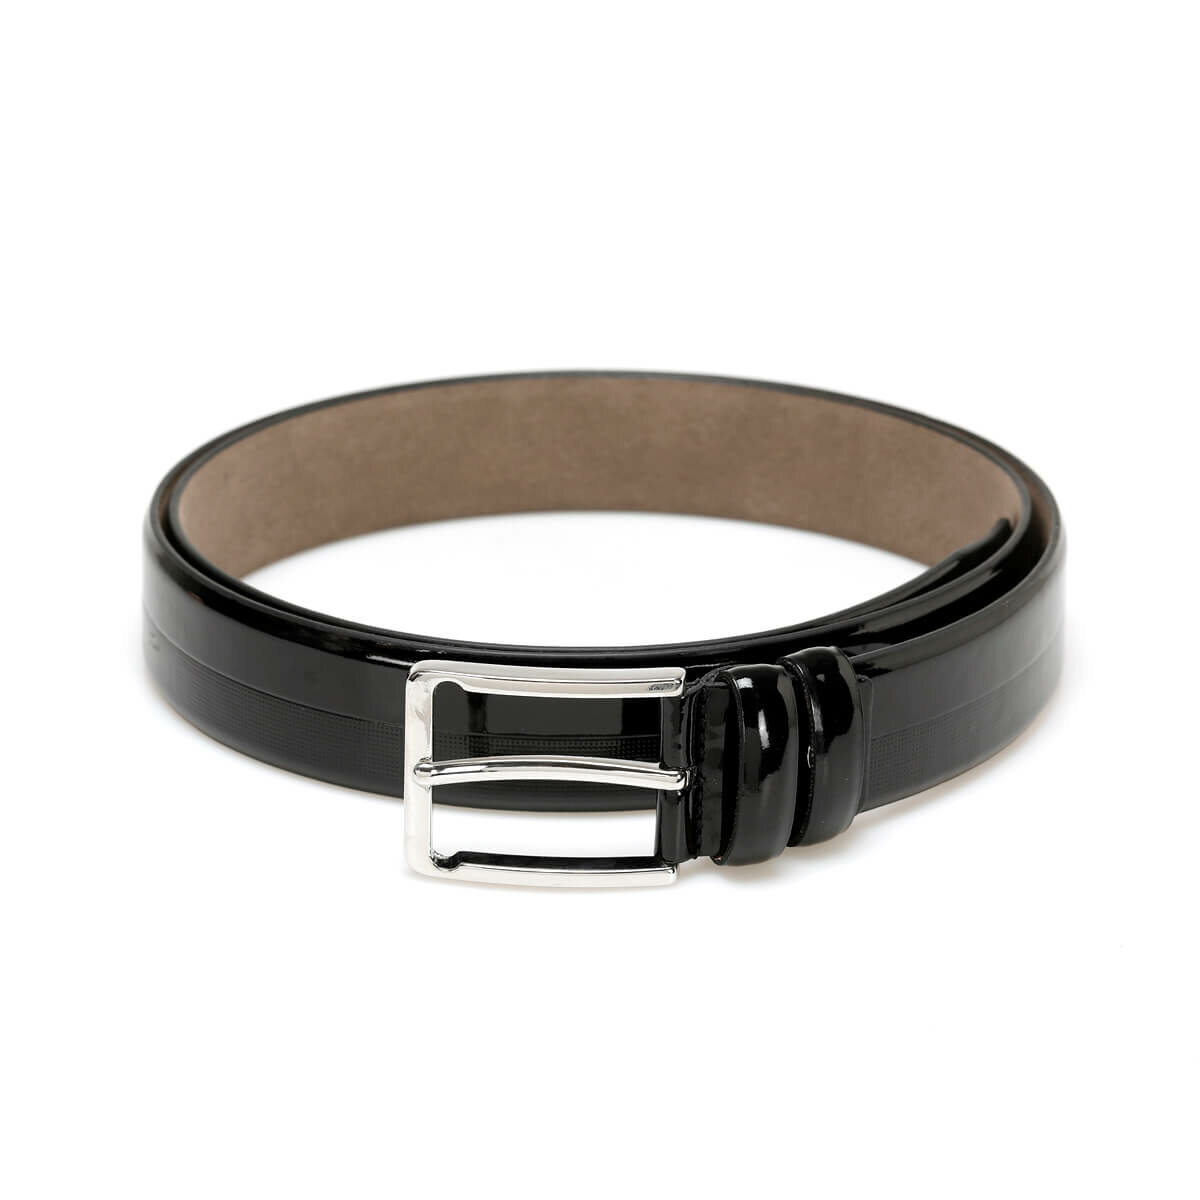 FLO MBR 3401 Black Male Belt Garamond